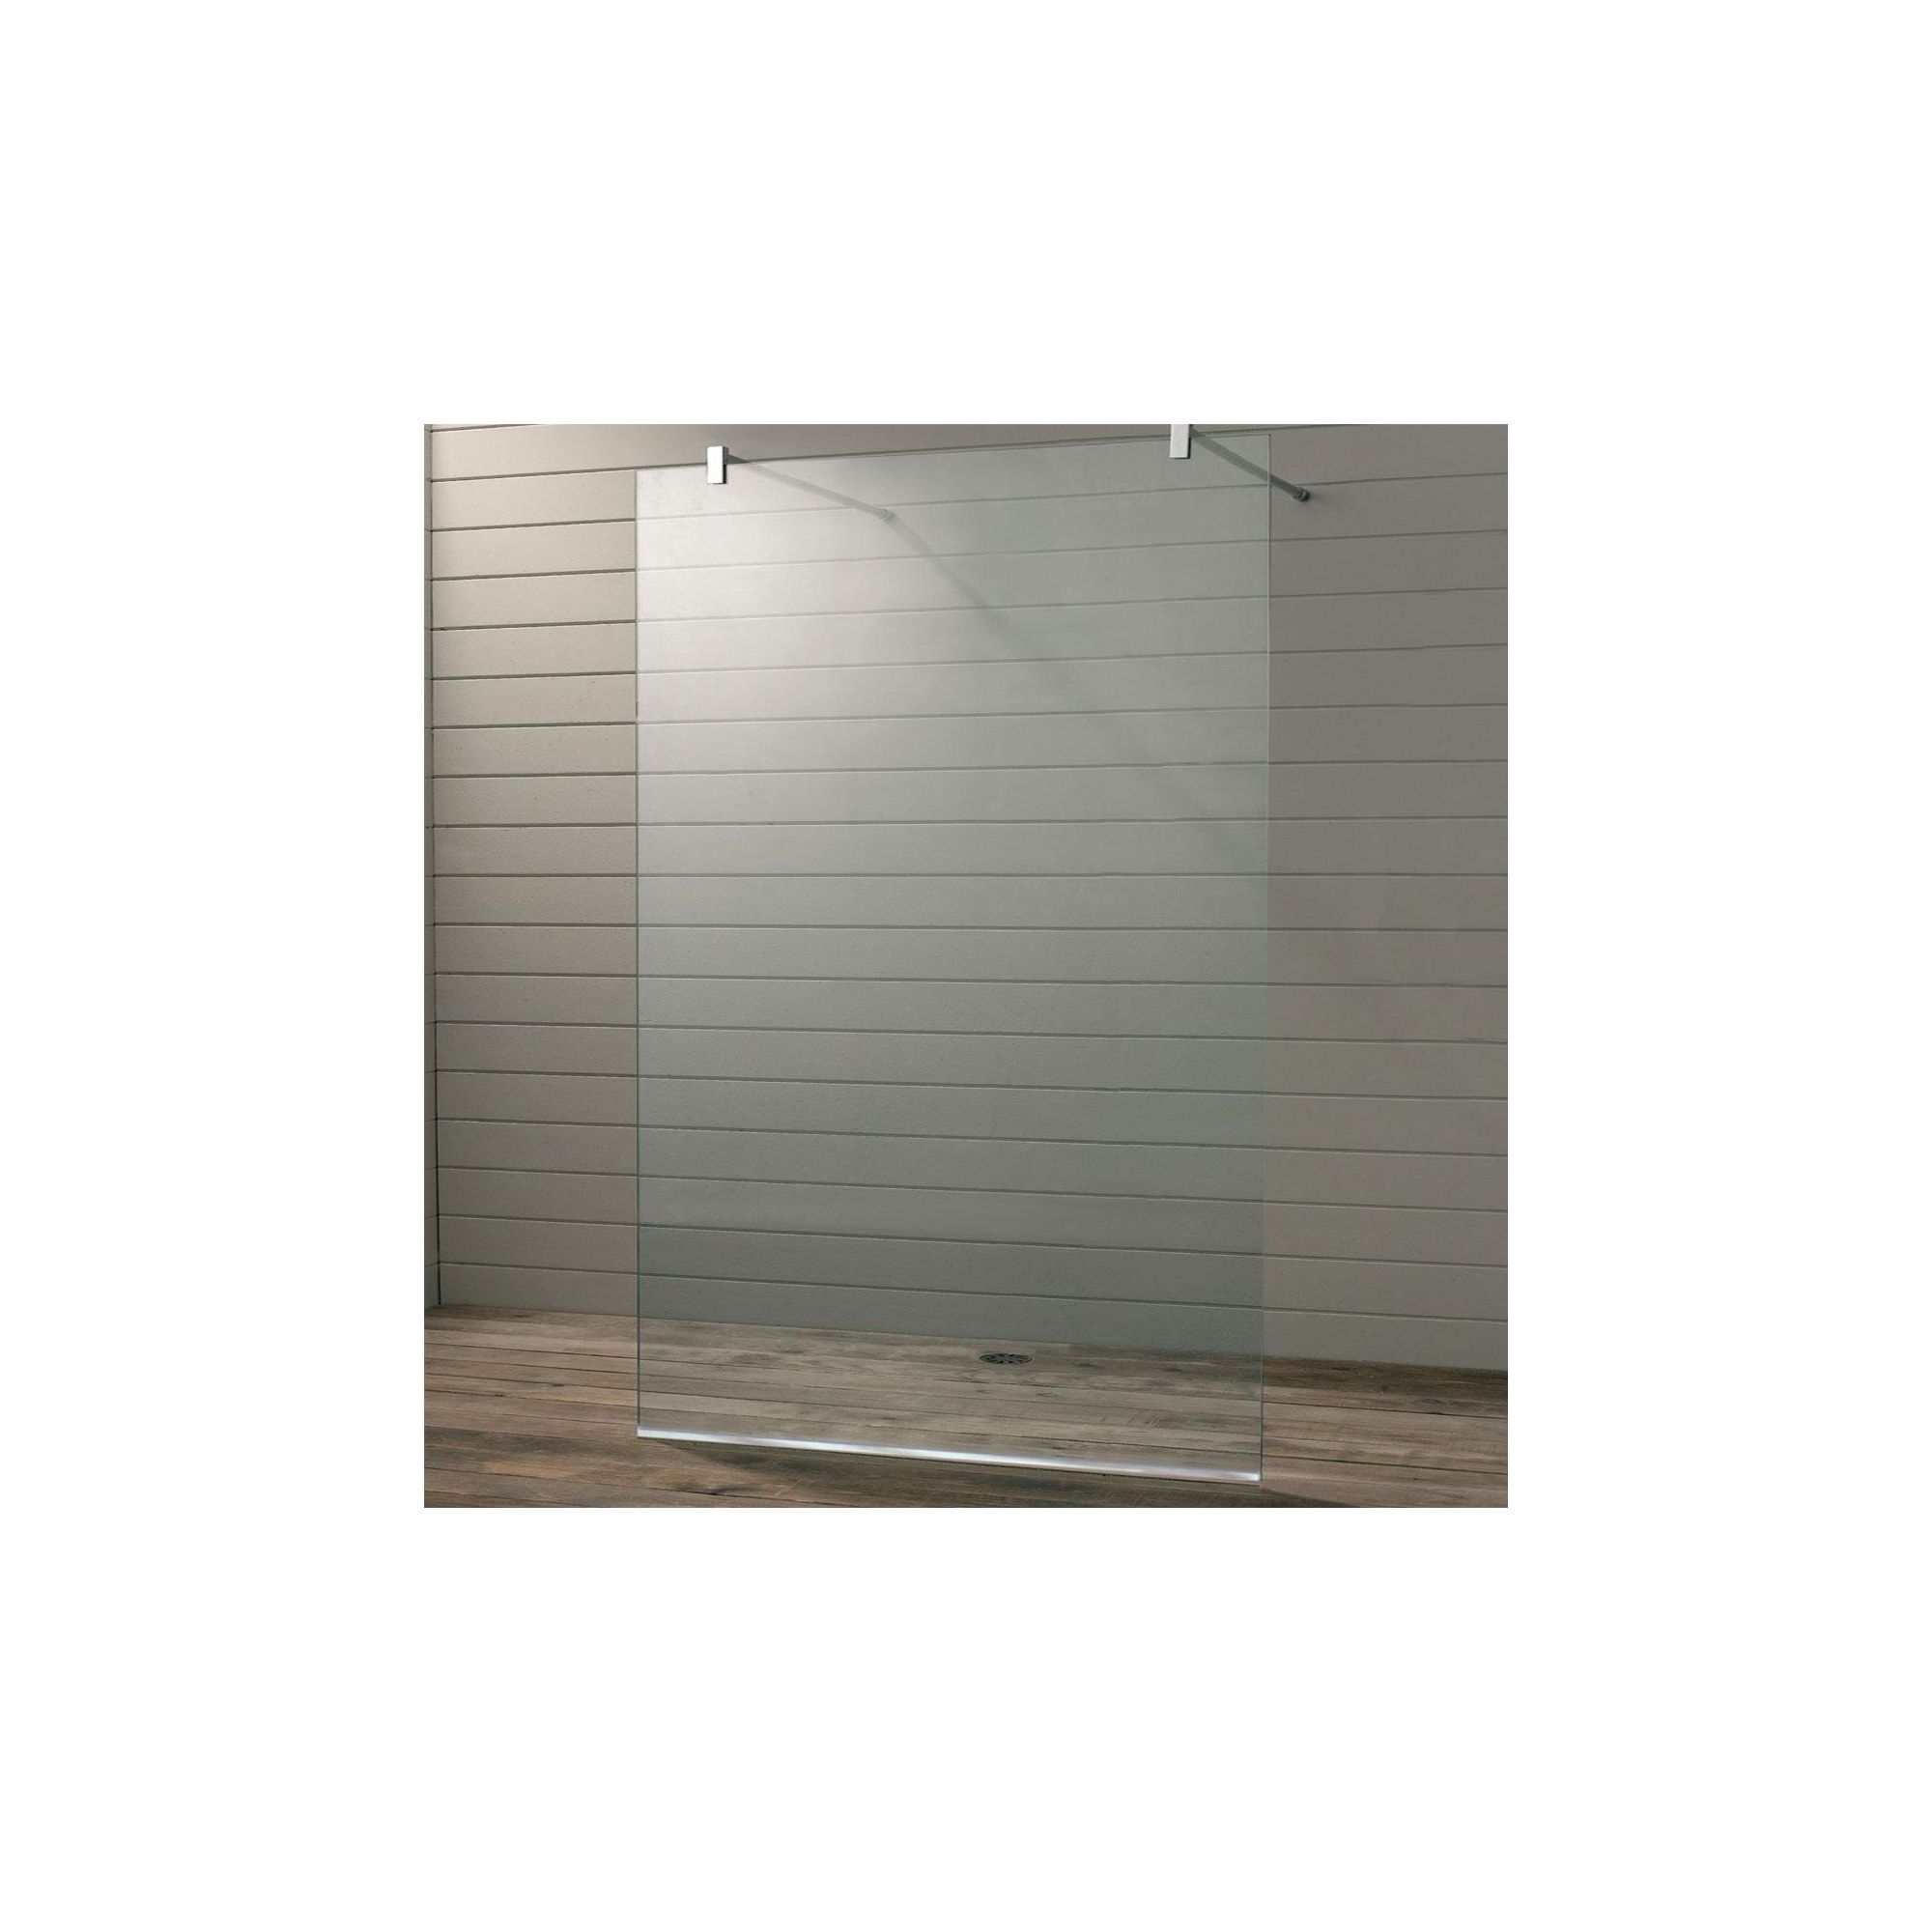 Duchy Premium Wet Room Glass Shower Panel, 1200mm x 900mm, 10mm Glass, Low Profile Tray at Tesco Direct